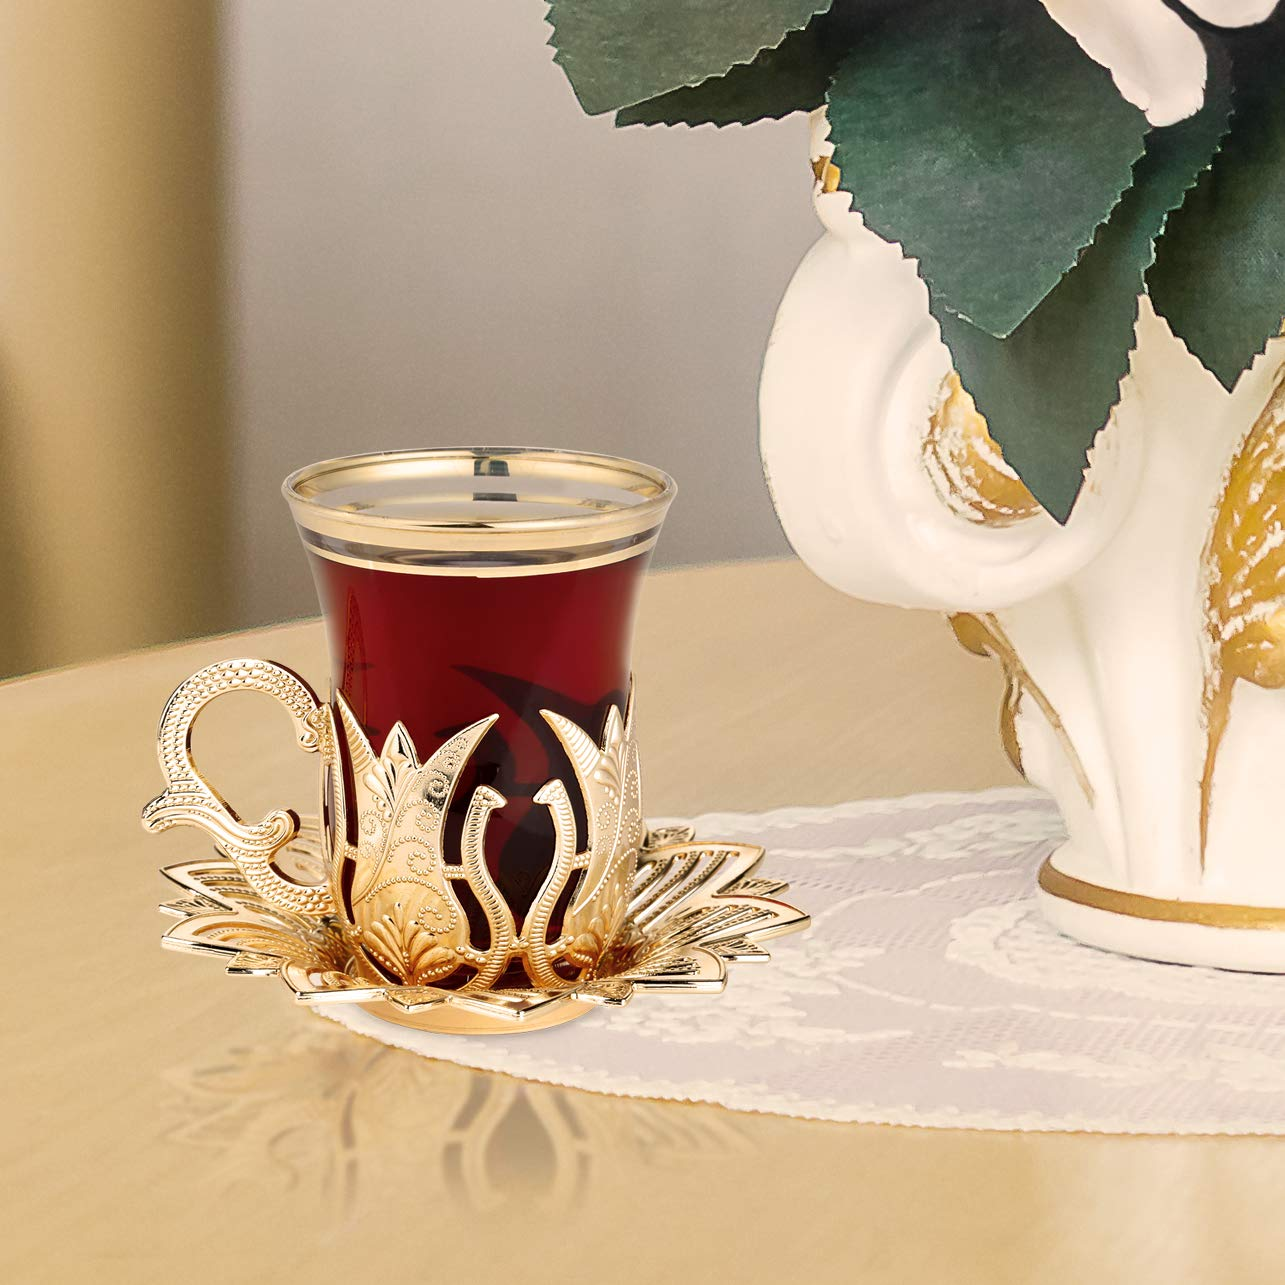 LaModaHome Golden Tea Set of 6 - Includes 6 Glasses, 6 Saucers Holders - VIP Special Serving Turkish Tulip - Arabic, Moroccan Coffee Sets - Machine Washable Cup, Mug (Gold)